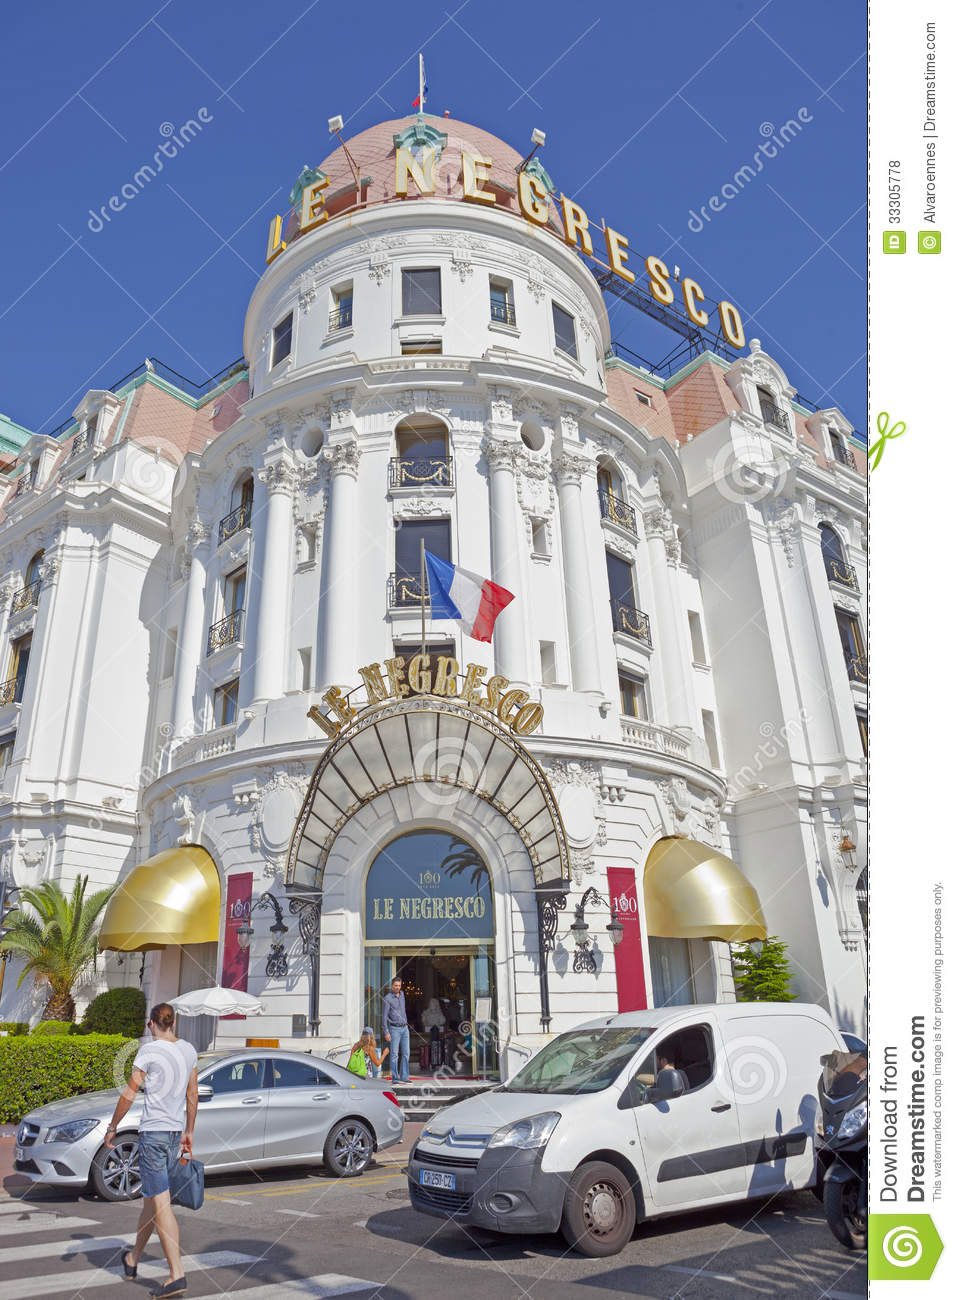 Le negresco editorial stock photo image 33305778 for Luxury hotels in nice